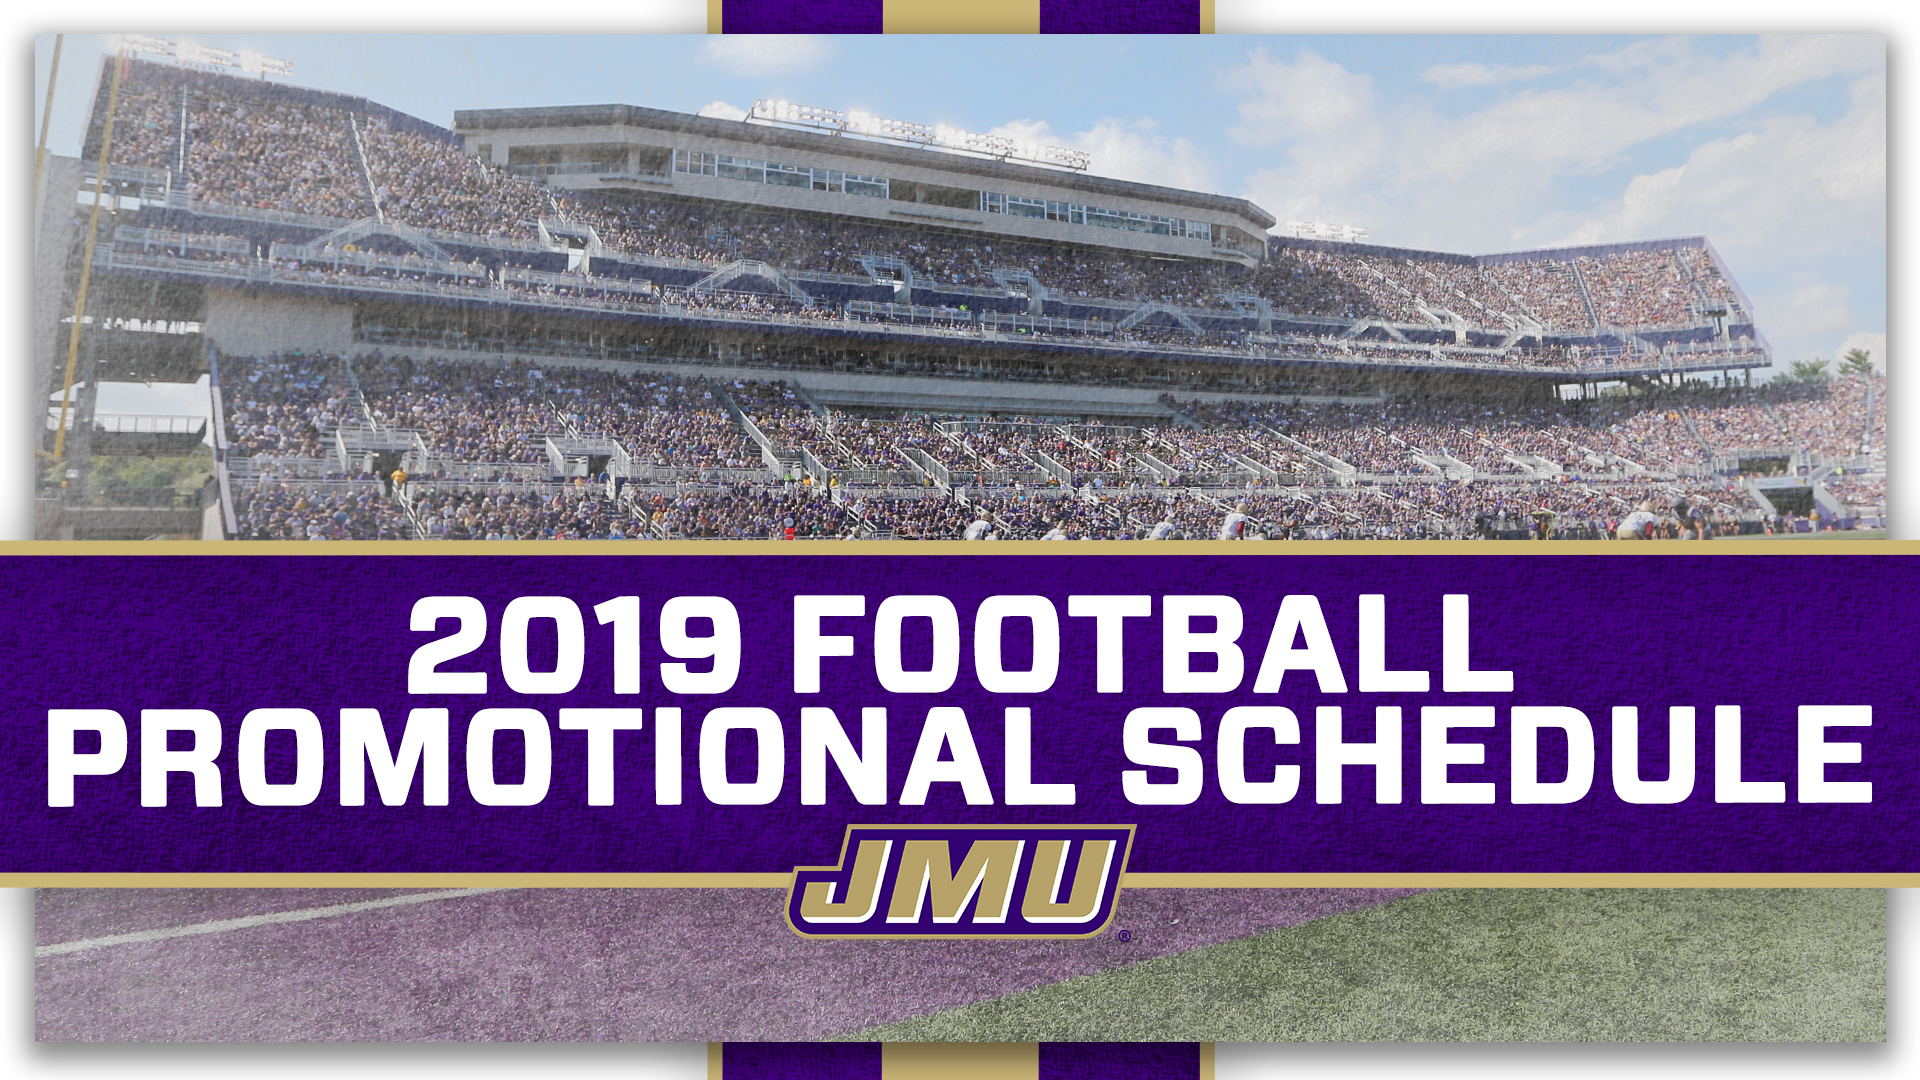 JMU Announces 2019 Football Promotional Schedule - James ... on george mason campus map, duke university campus map, maine campus map, madison campus map, navy campus map, hope campus map, shenandoah university campus map, nfcc campus map, boston university campus map, w&m campus map, printable duke campus map, university of richmond campus map, university of virginia campus map, university of dubuque campus map, bridgewater state university campus map, florida state university campus map, bccc campus map, smcvt campus map, bloomu campus map, uw-l campus map,